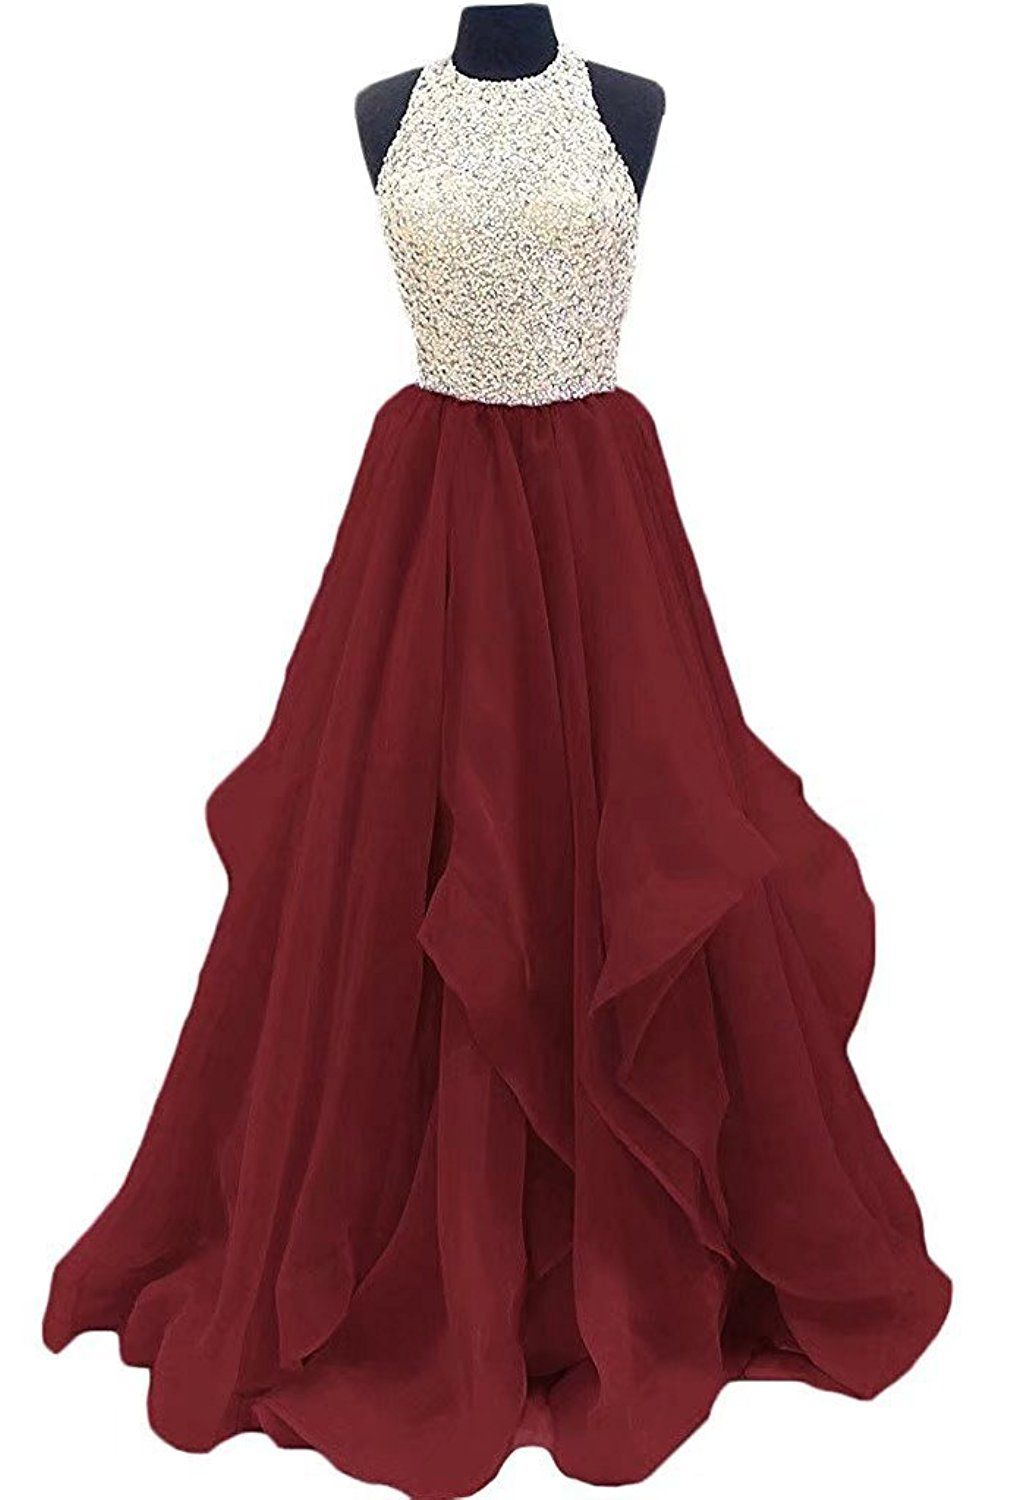 119dcfaf3 FNKS CRAFT Beaded Long Prom Dresses Sweet 16 Party Gown 2018 Evening Dresses  at Amazon Women s Clothing store